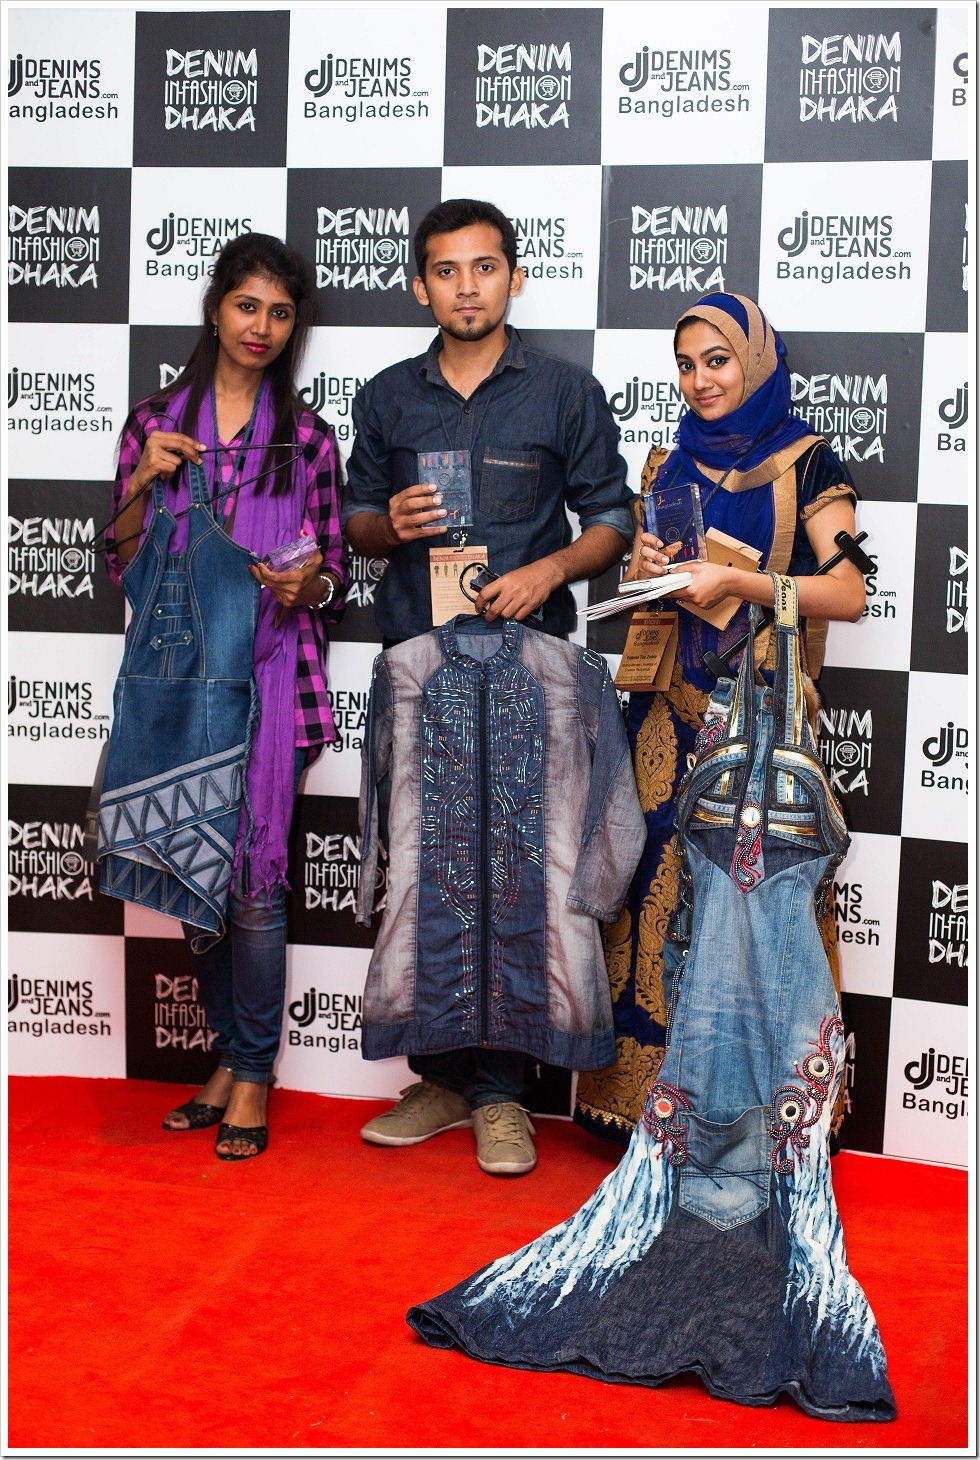 1st Position : Mr. Shovon Majumder, SMUCT ( Middle), 2nd Position : Fatema Zohoro, SMUCT ( Left ), 3rd Position : Shamim Ara Nasrin, NIFT ( Right )